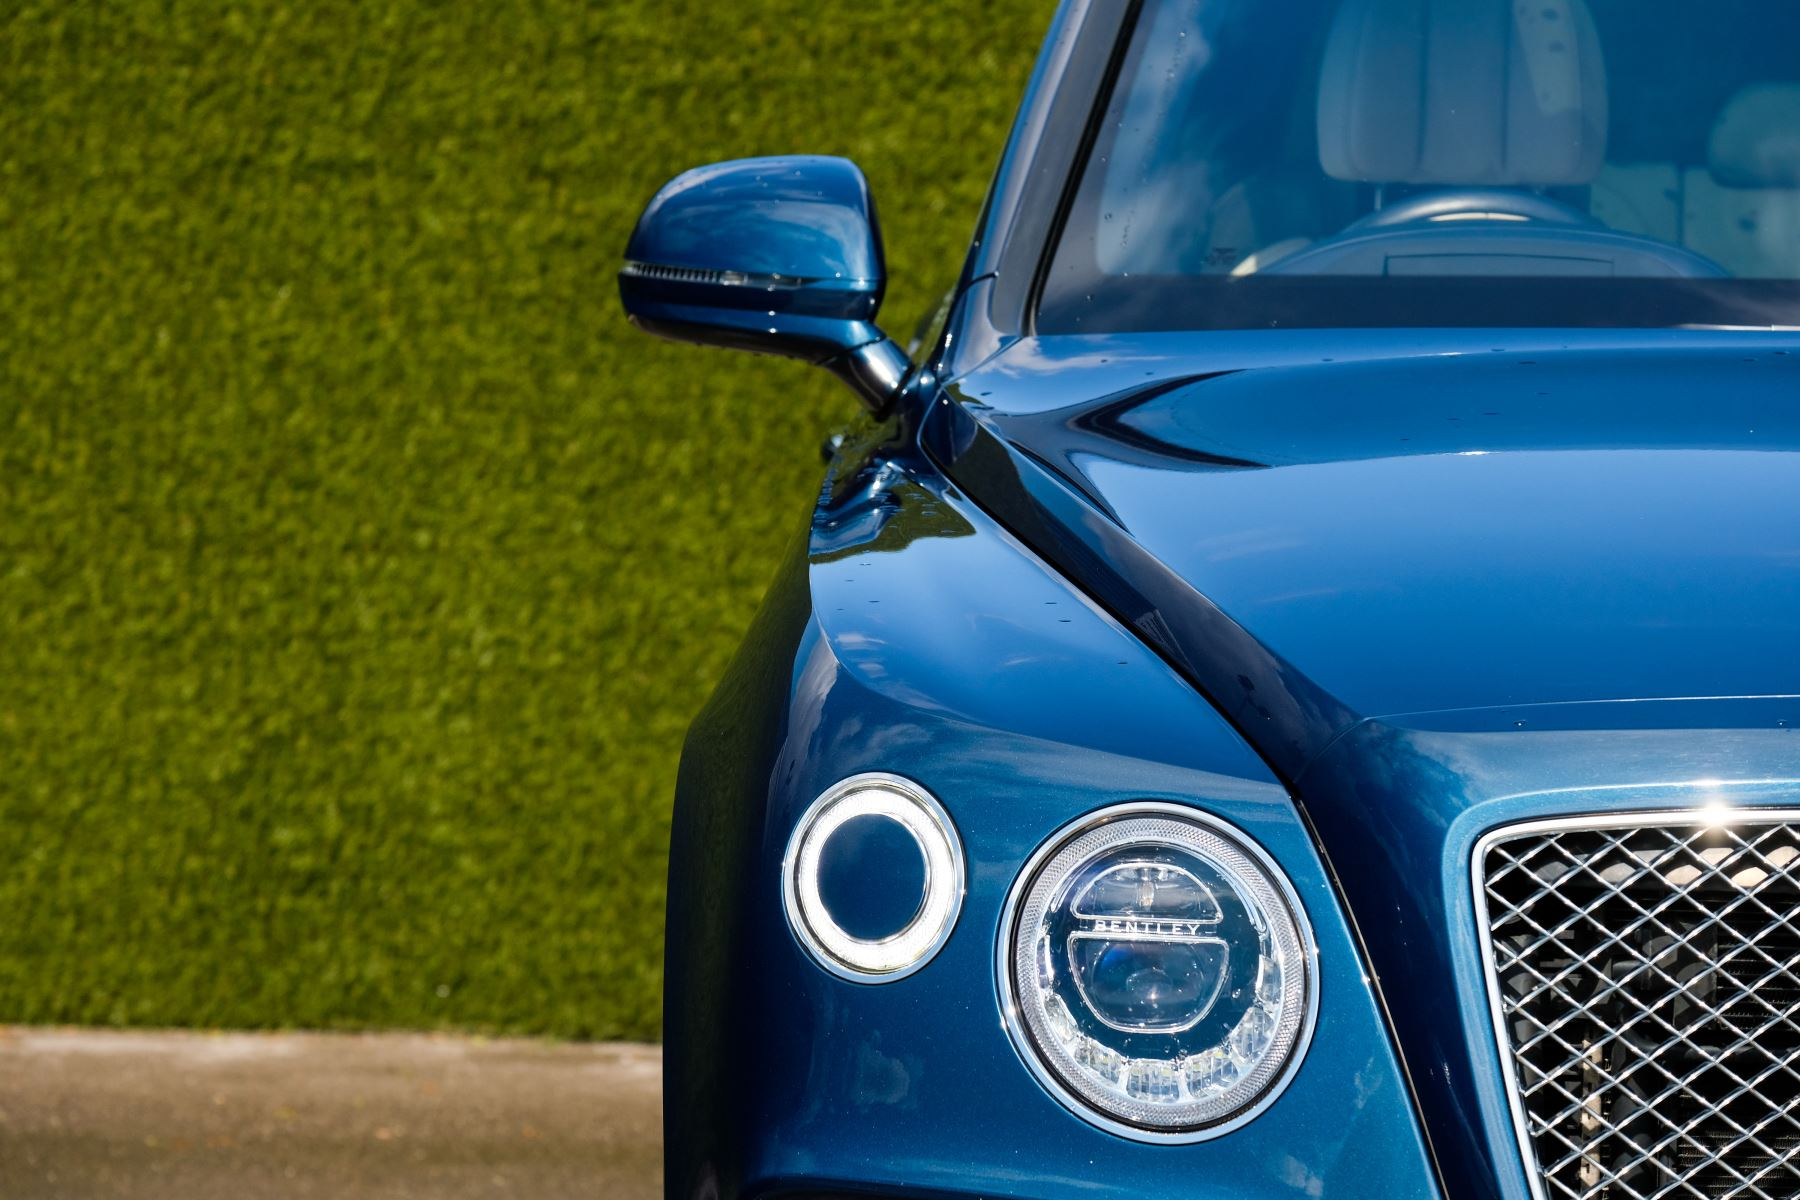 Bentley Bentayga 6.0 W12 - All Terrain, Sunshine, City and Touring Specification image 7